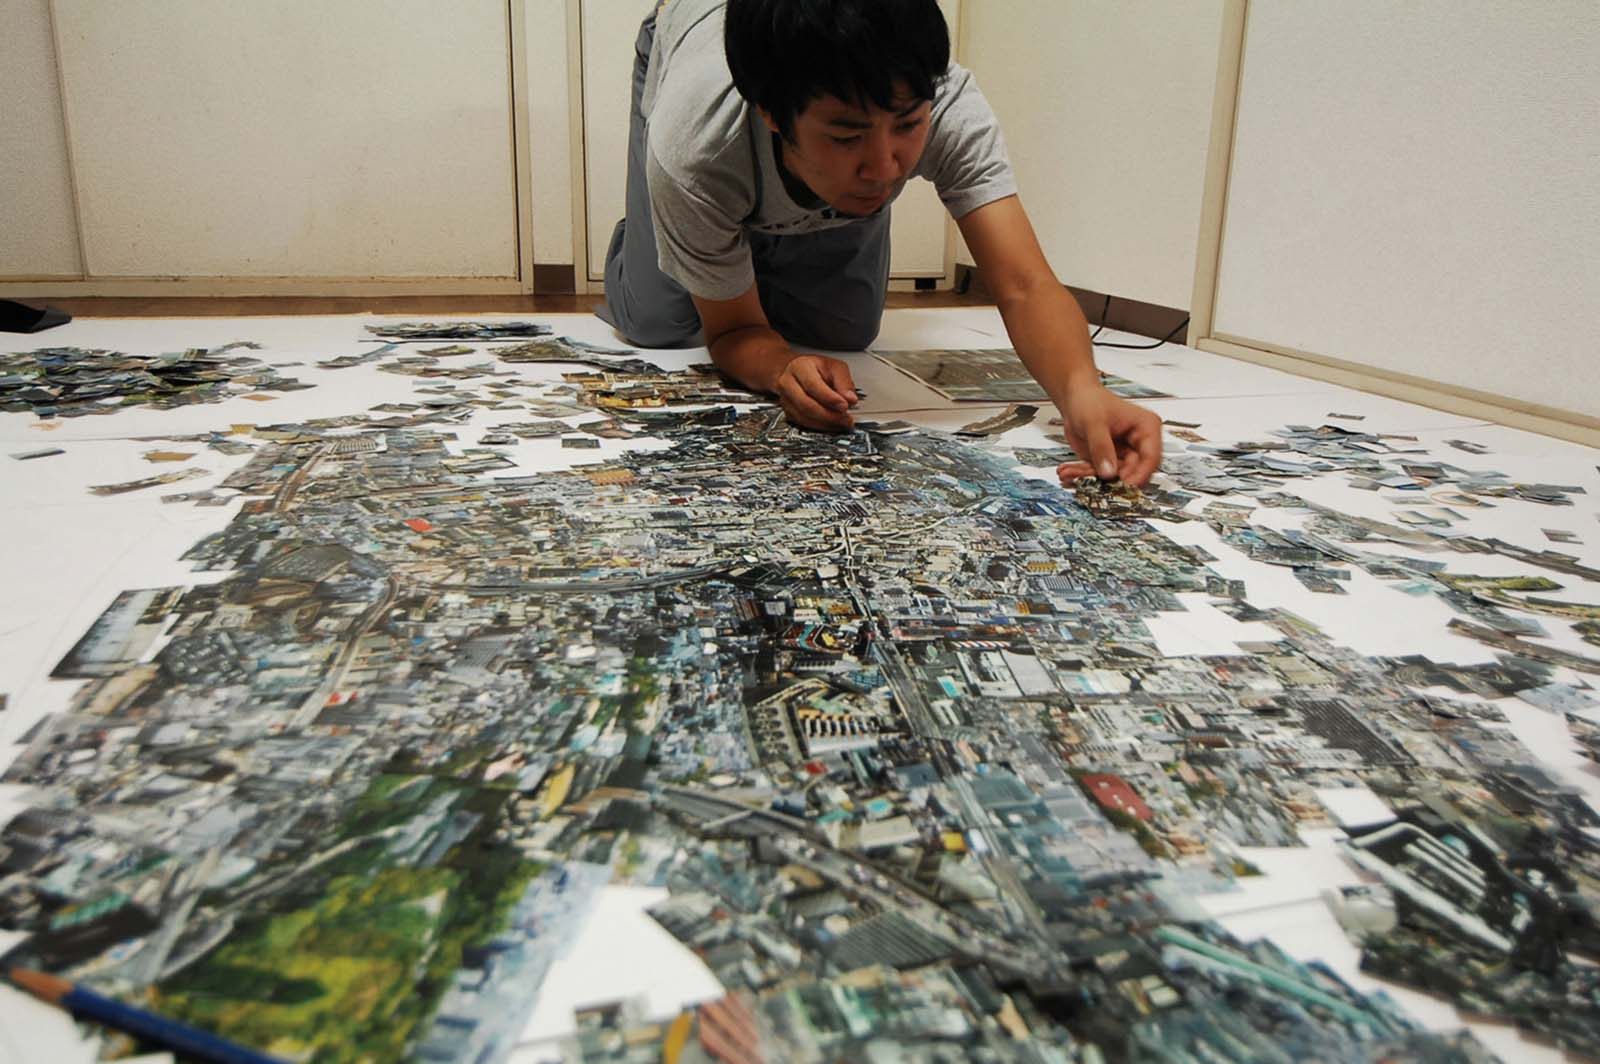 With little more than scissors and glue, Nishino pieces together thousands of personally photographed prints in an effort to re-experience a city.<br /><br /><i>Diorama Map i-Land</i>, 2007/2008, Light jet print on, Kodak Endura paper, 170 x 250 cm, © Soh